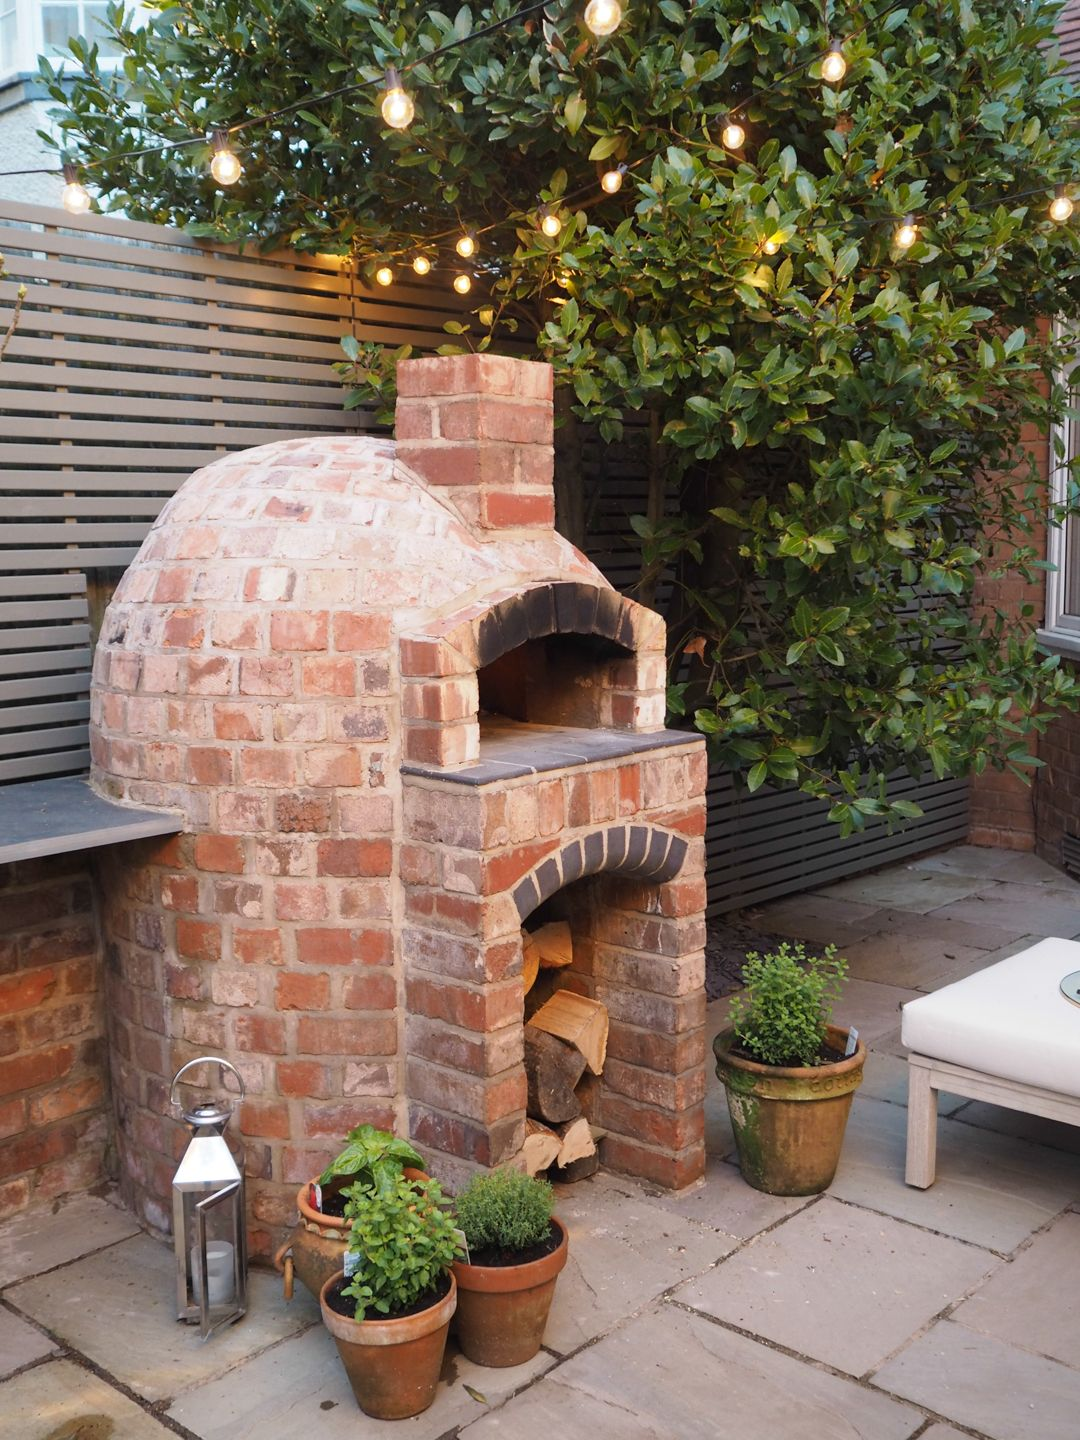 Installing a wood fired pizza oven in our garden